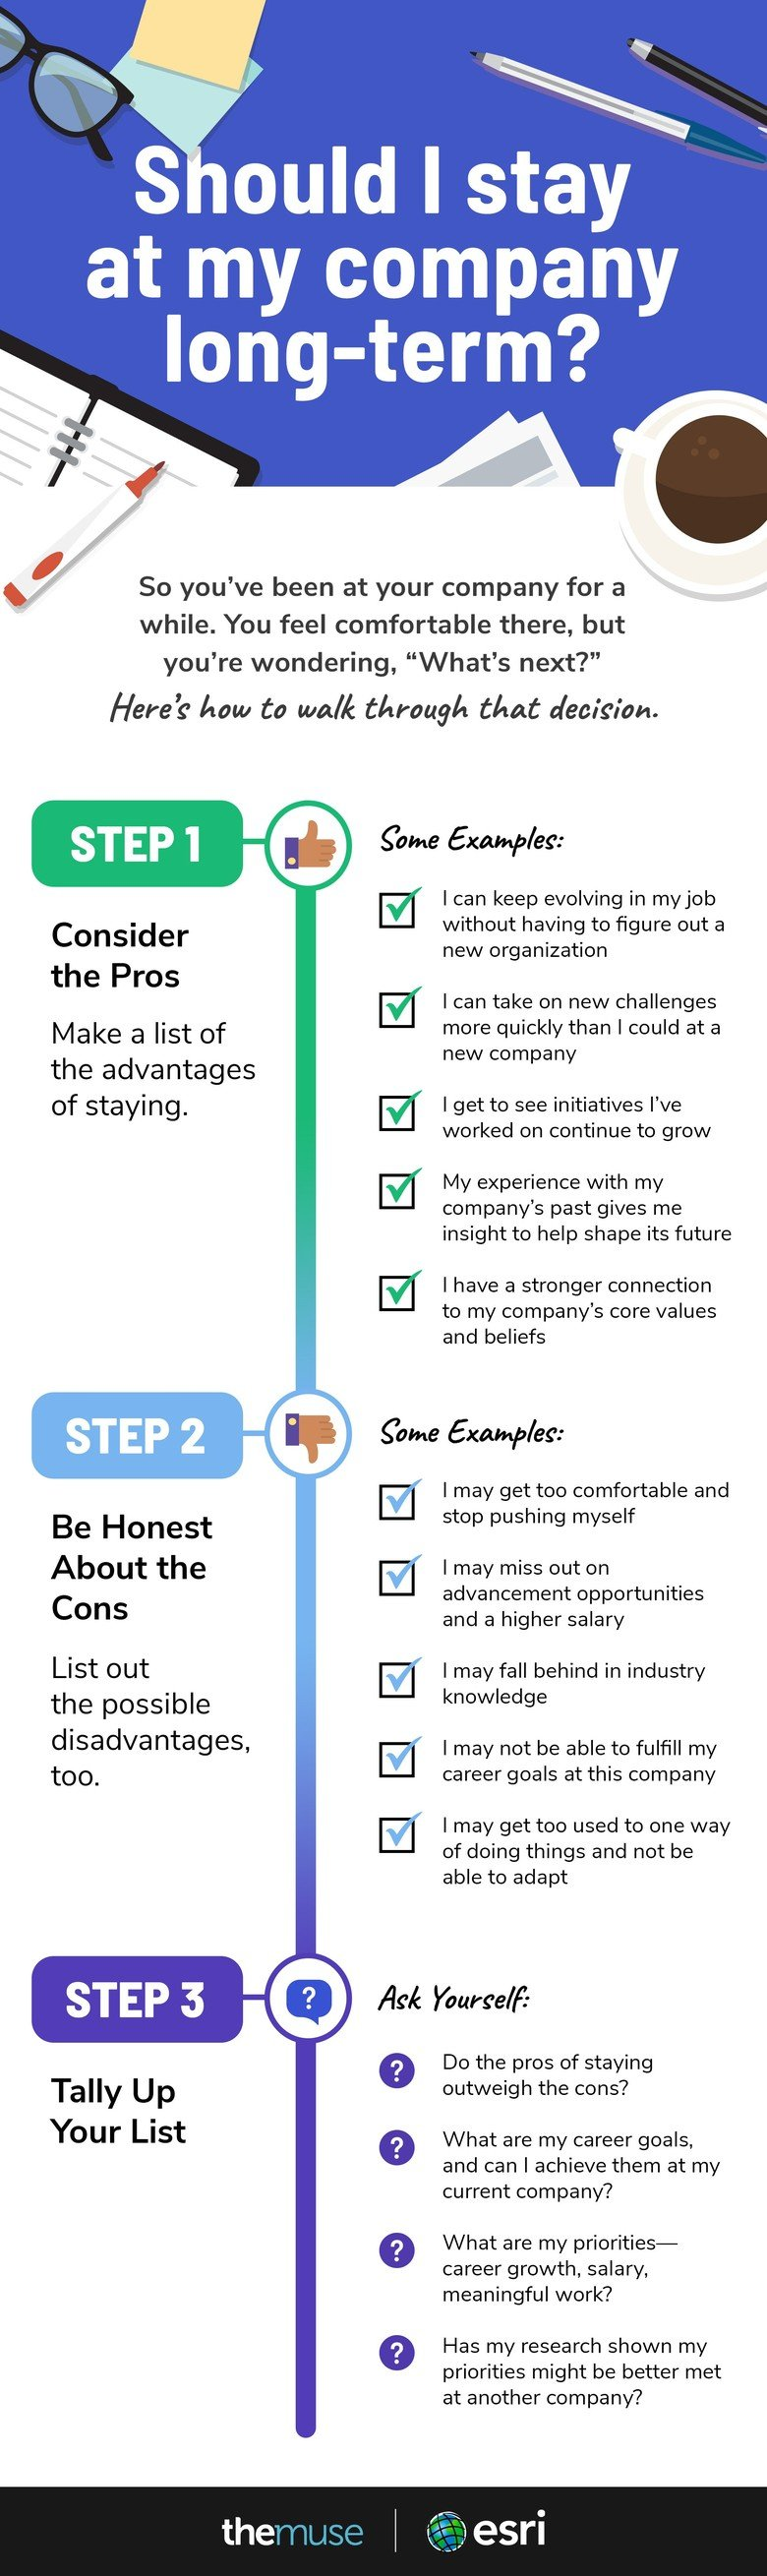 Infographic explaining 3 steps to deciding whether to change companies or stay put